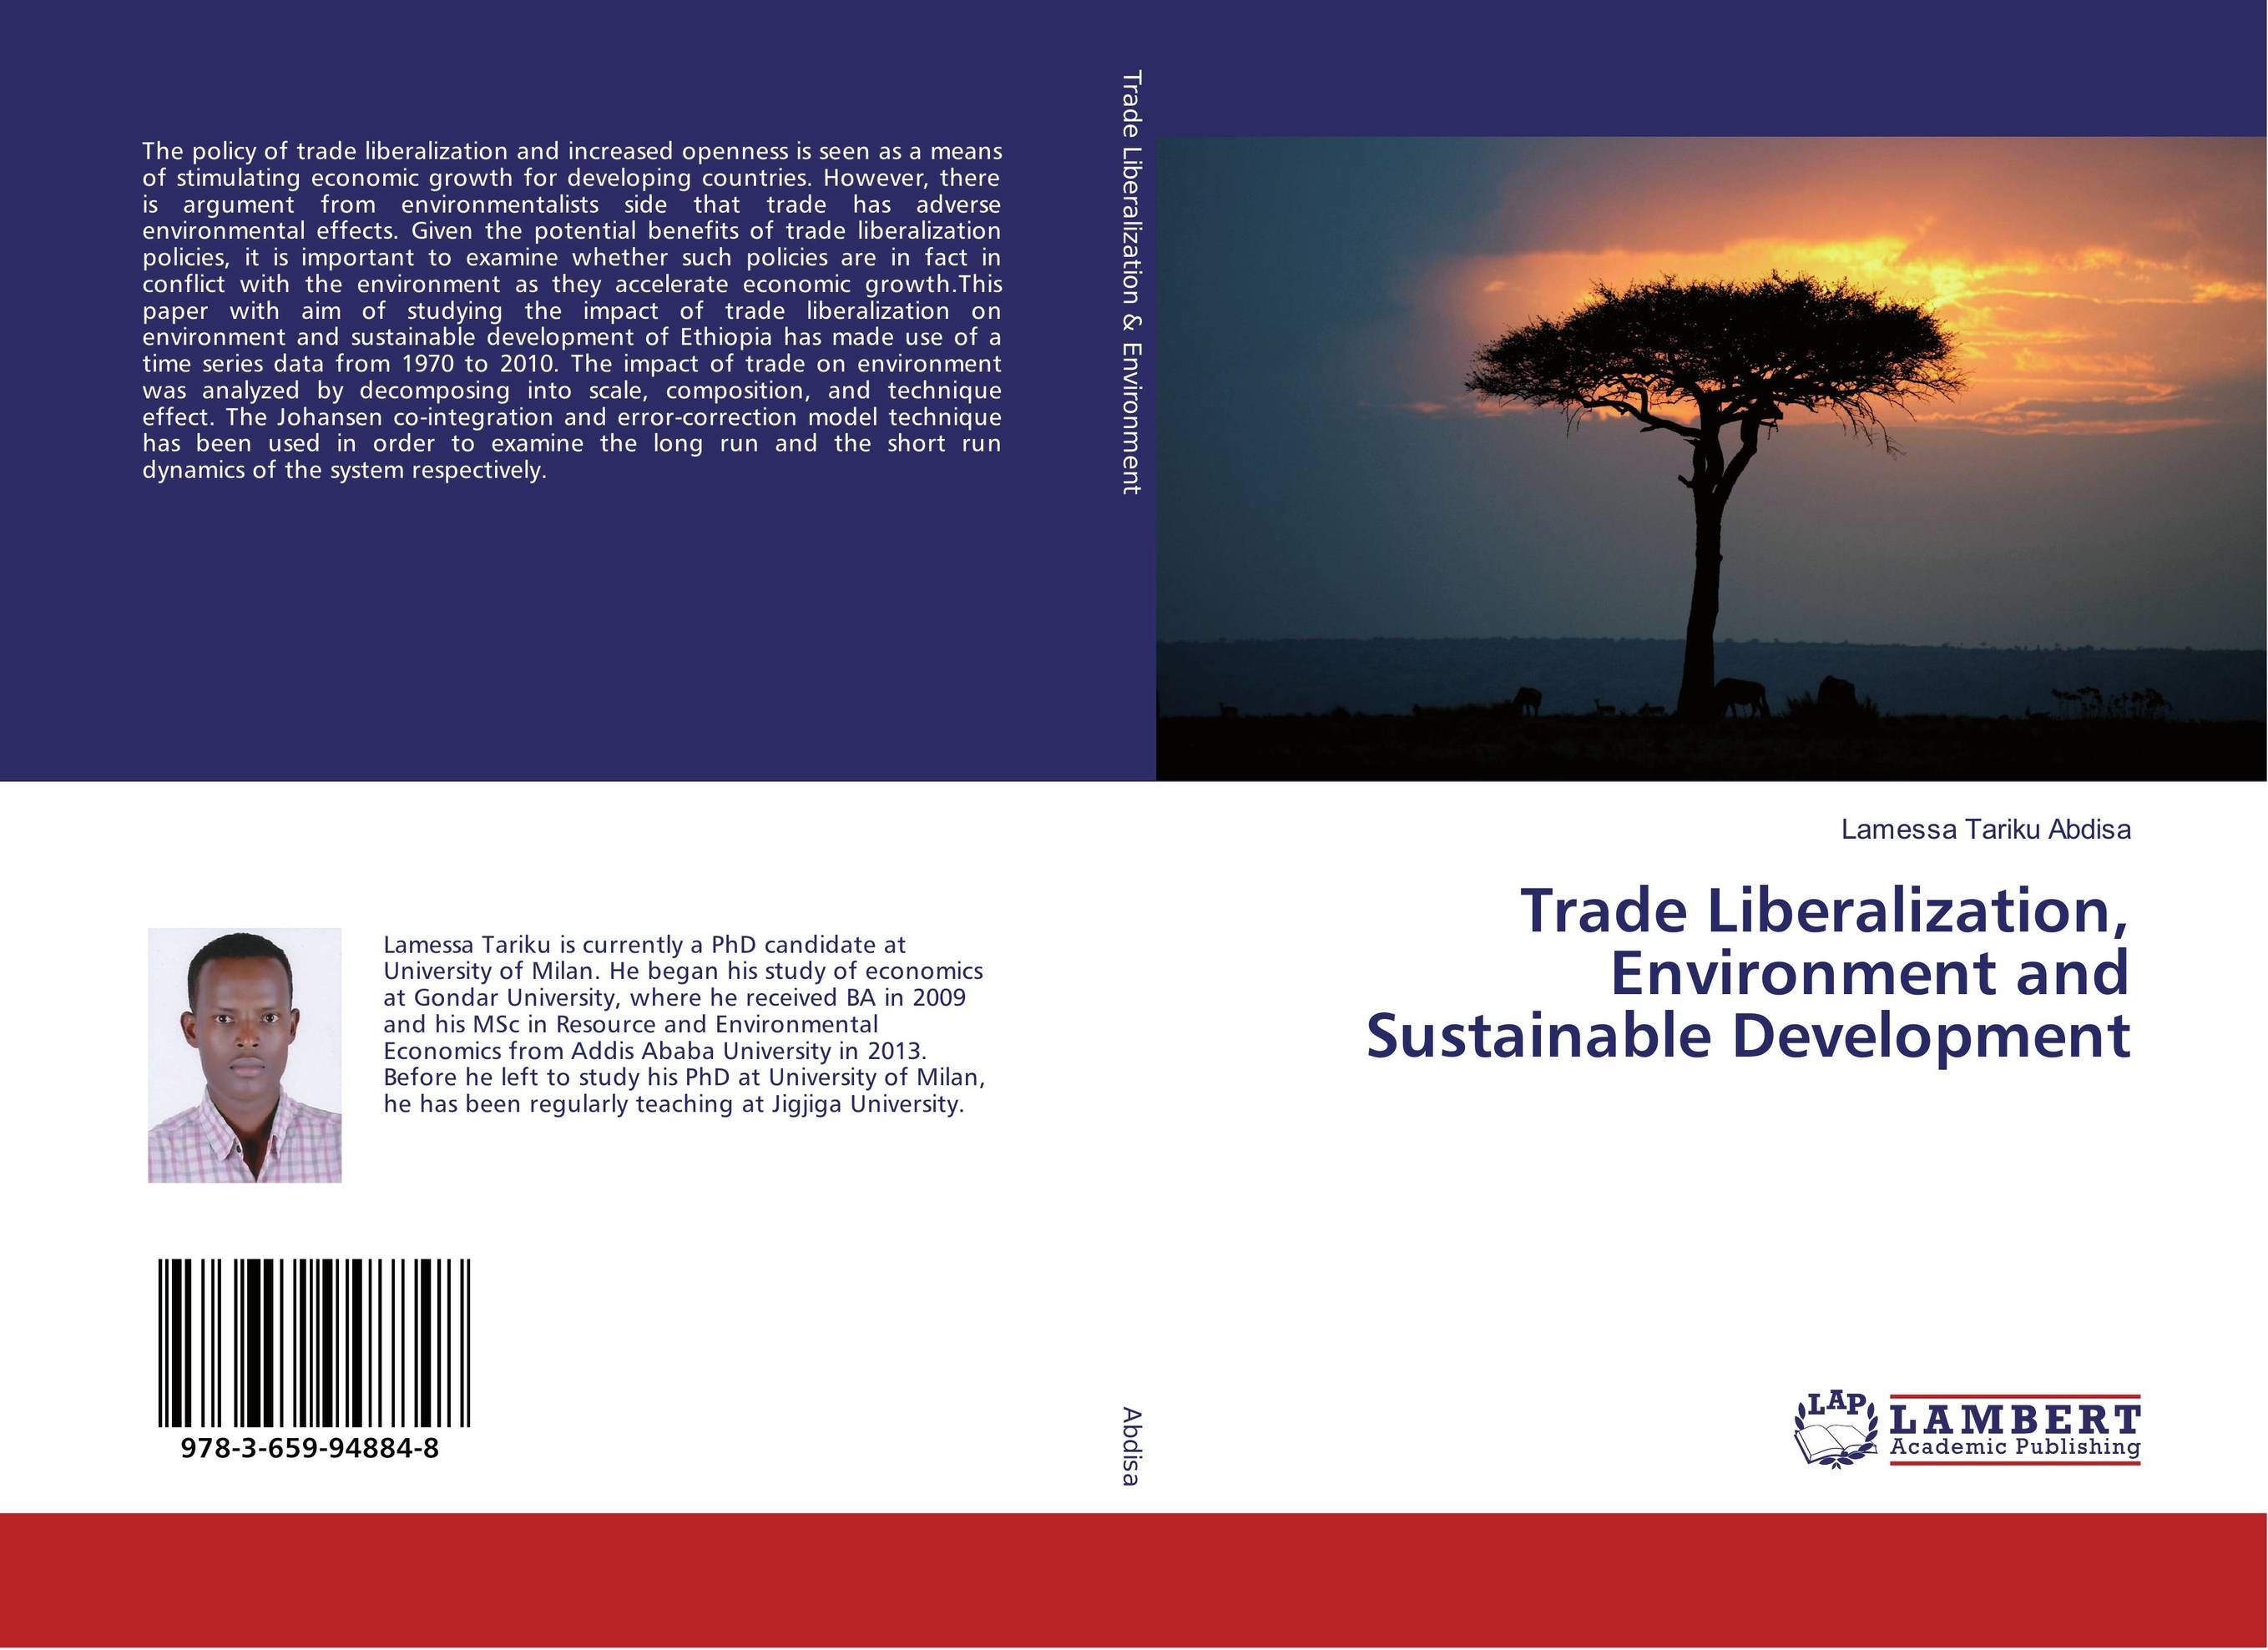 trade liberalization and environment testing of pollution pakistan economics essay Keywords: trade liberalization, environment, pollution haven hypothesis, emission, pollution term of trade, pakistan, us and eu (uk and germany) trade liberalization accelerates economic growth but at the same time leads to environmental degradation particularly in developing countries.